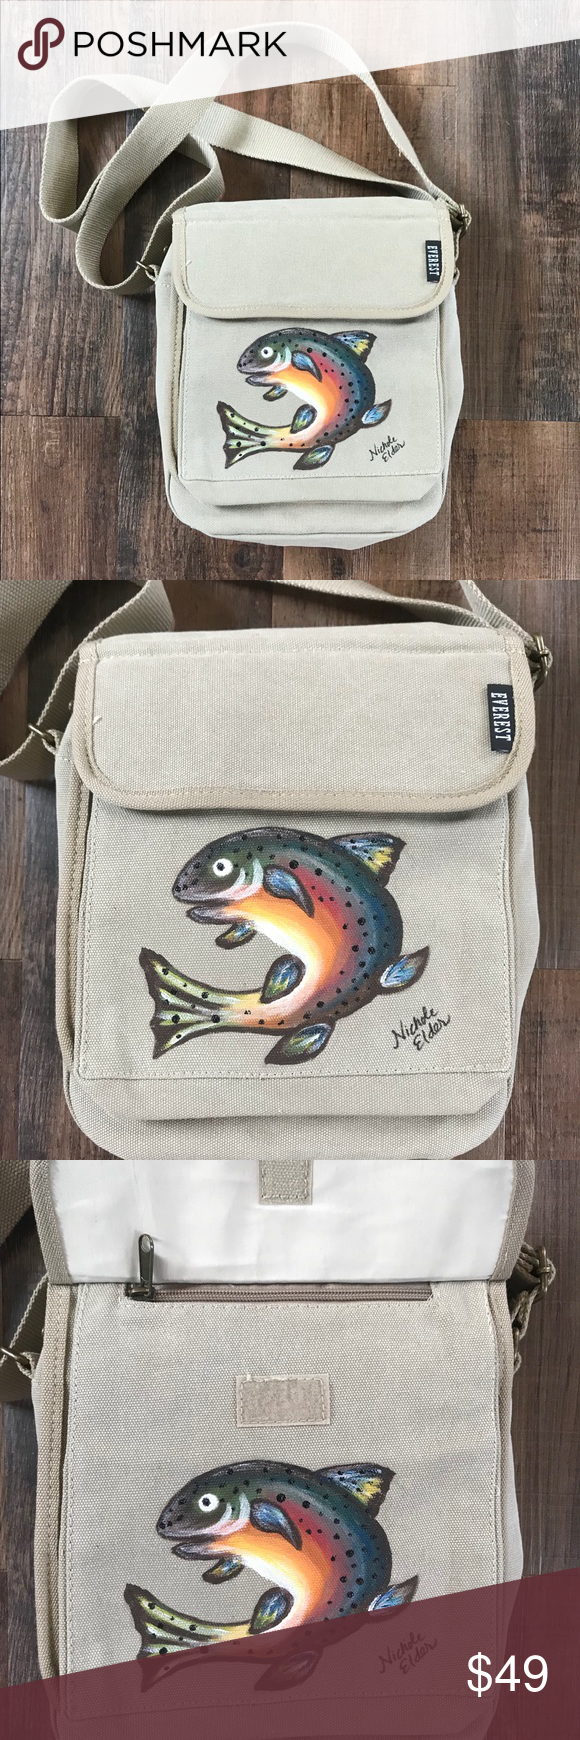 c7e790892877 Men s Messenger Bag with Painted Rainbow Trout Everest canvas messenger bag.  Large enough for an IPad or Tablet. Sturdy heavyweight cotton canvas.